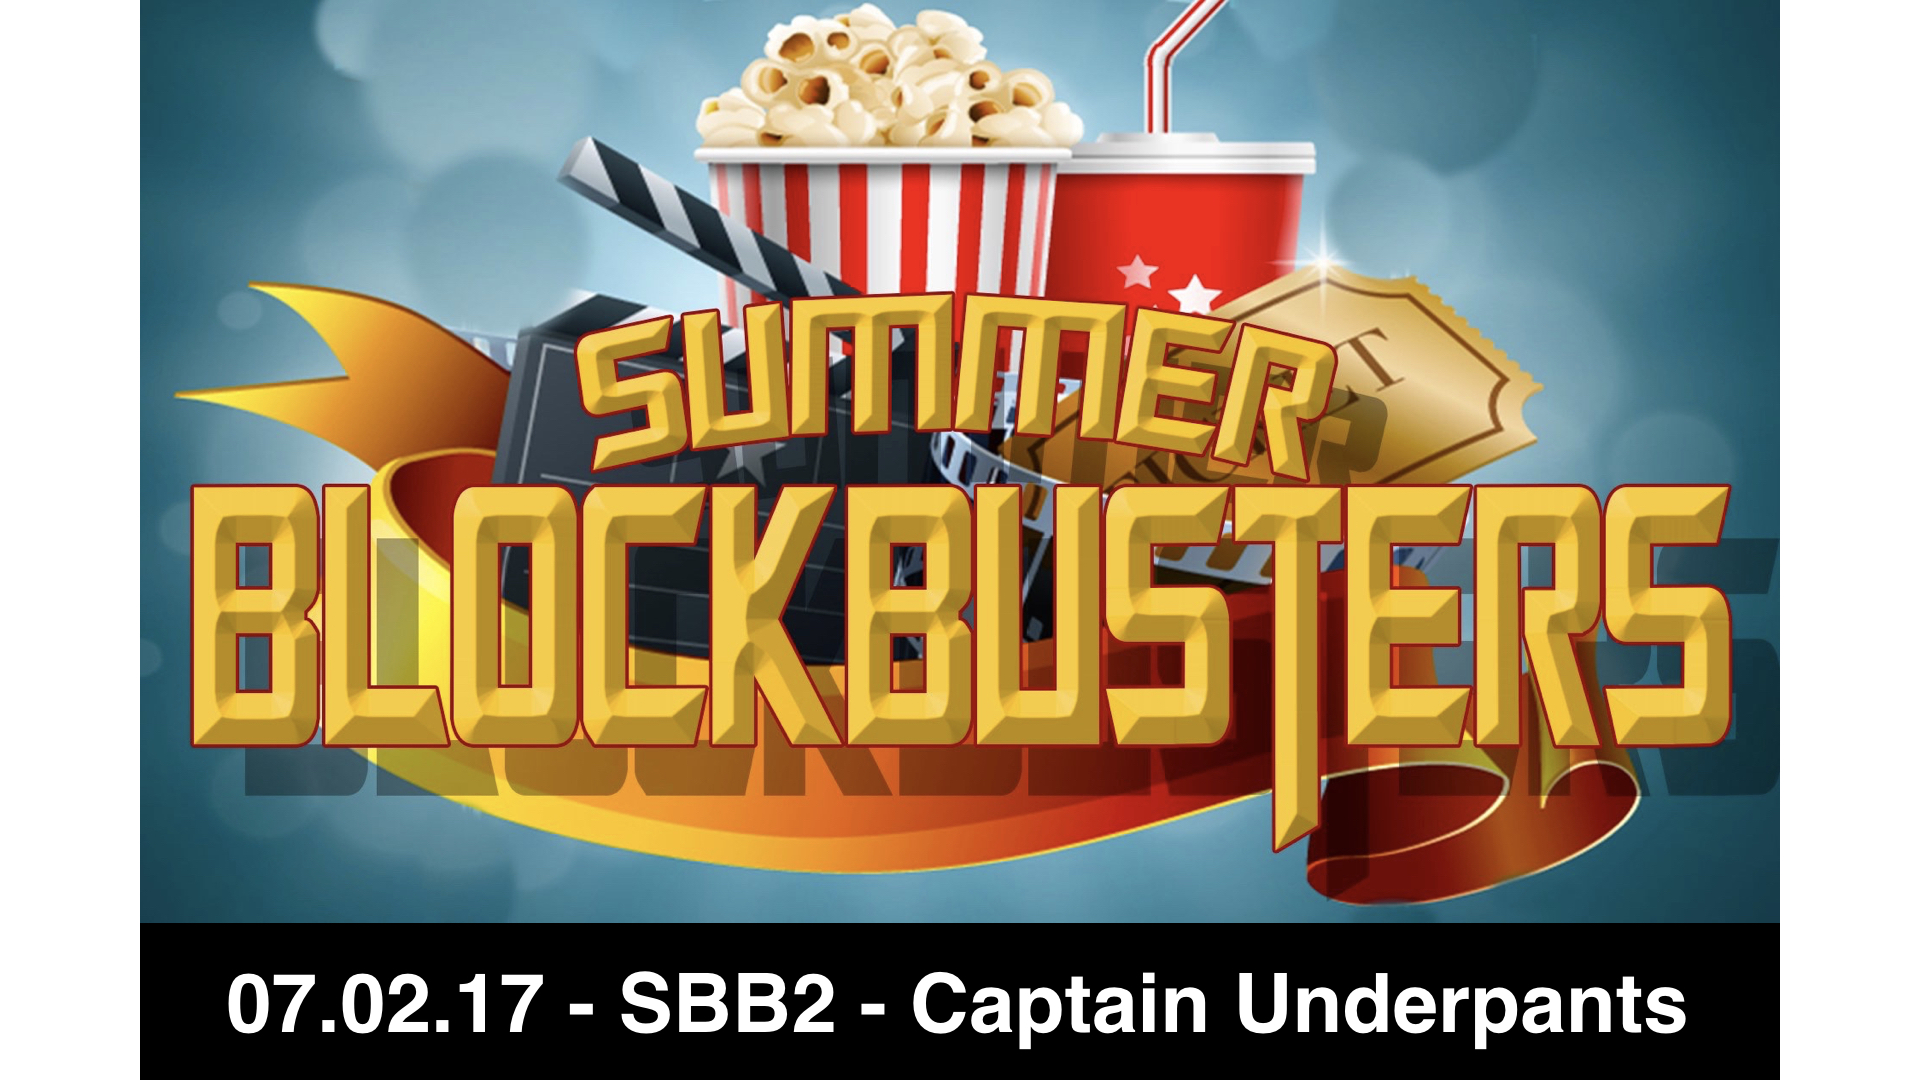 07.02.17 - SBB2 - Captain Underpants